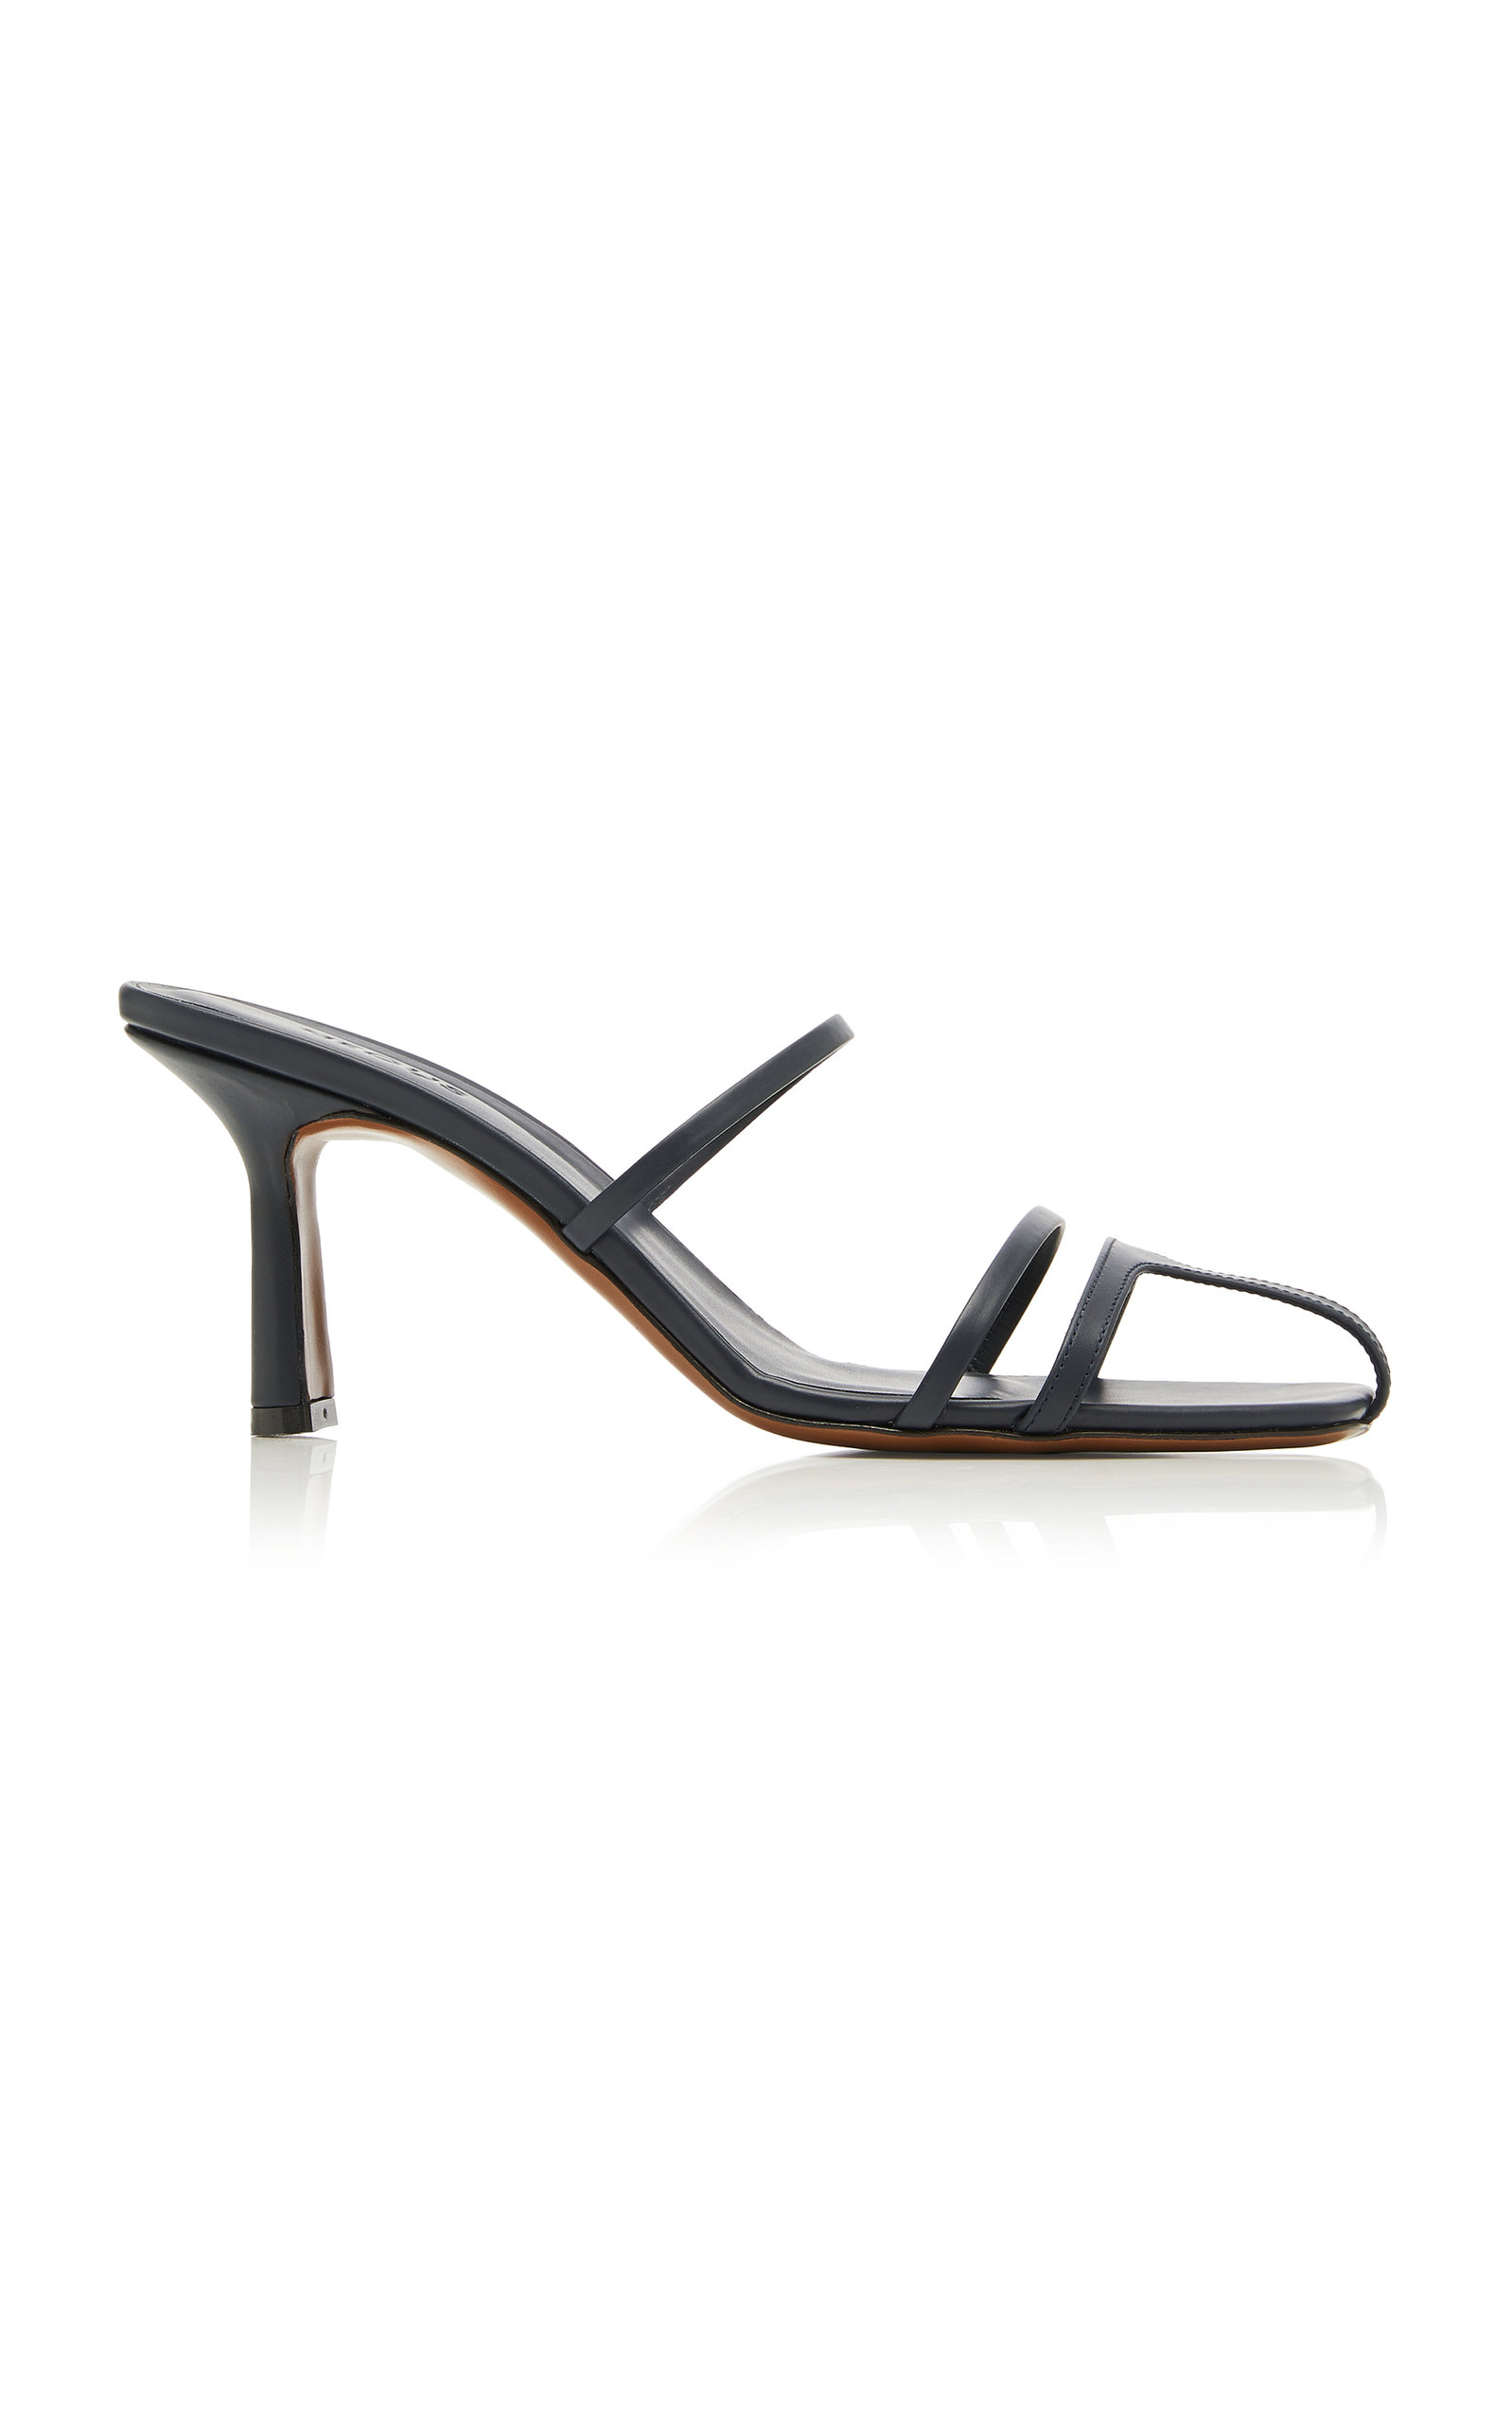 Neous Pumps Veki Leather Sandals